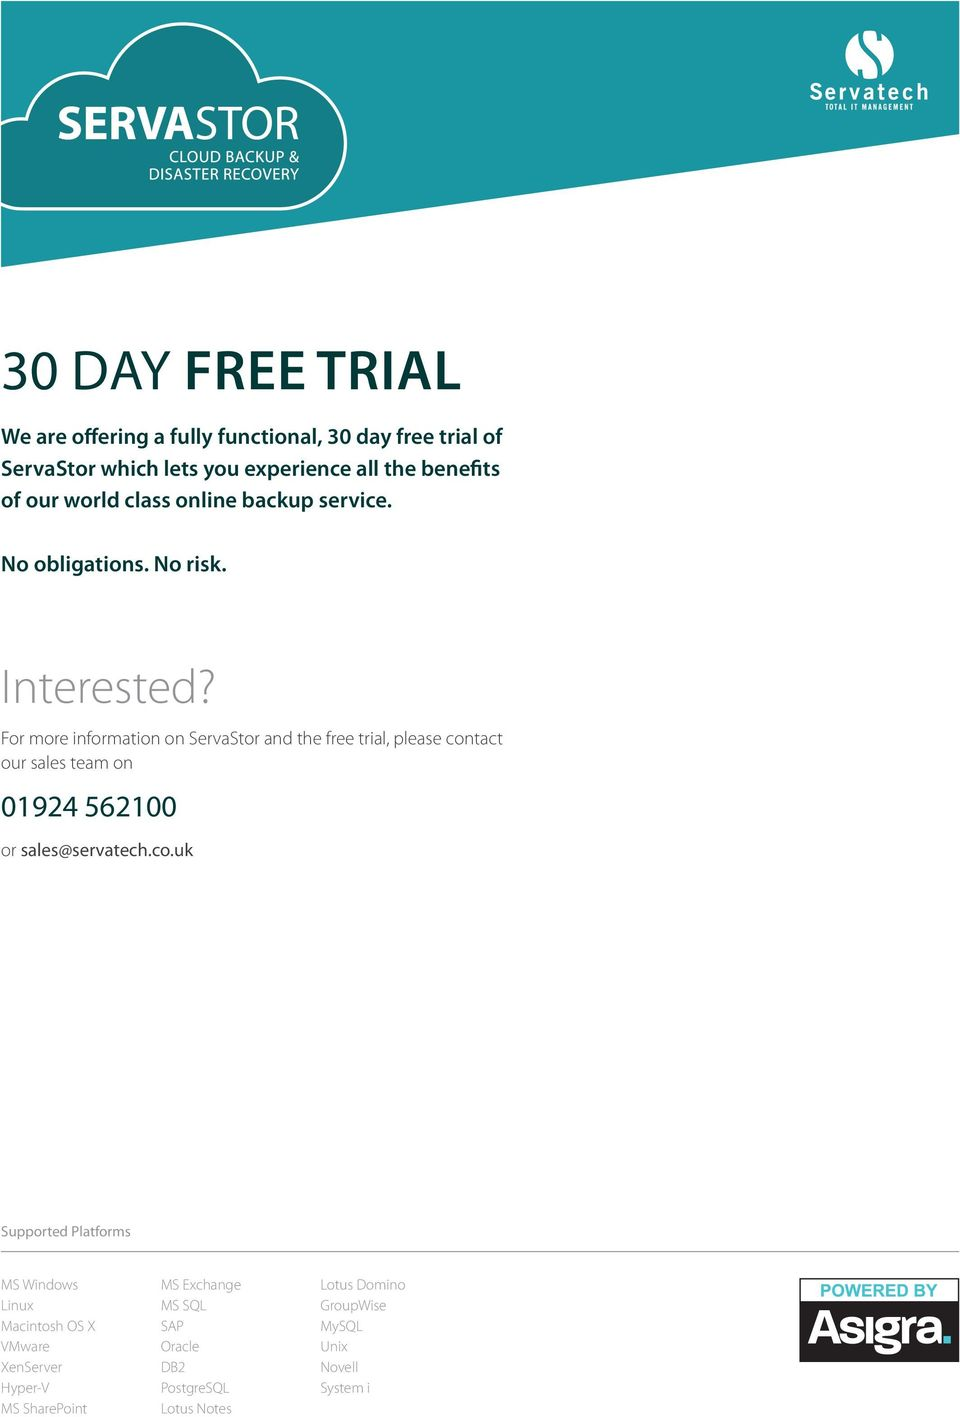 For more information on ServaStor and the free trial, please con